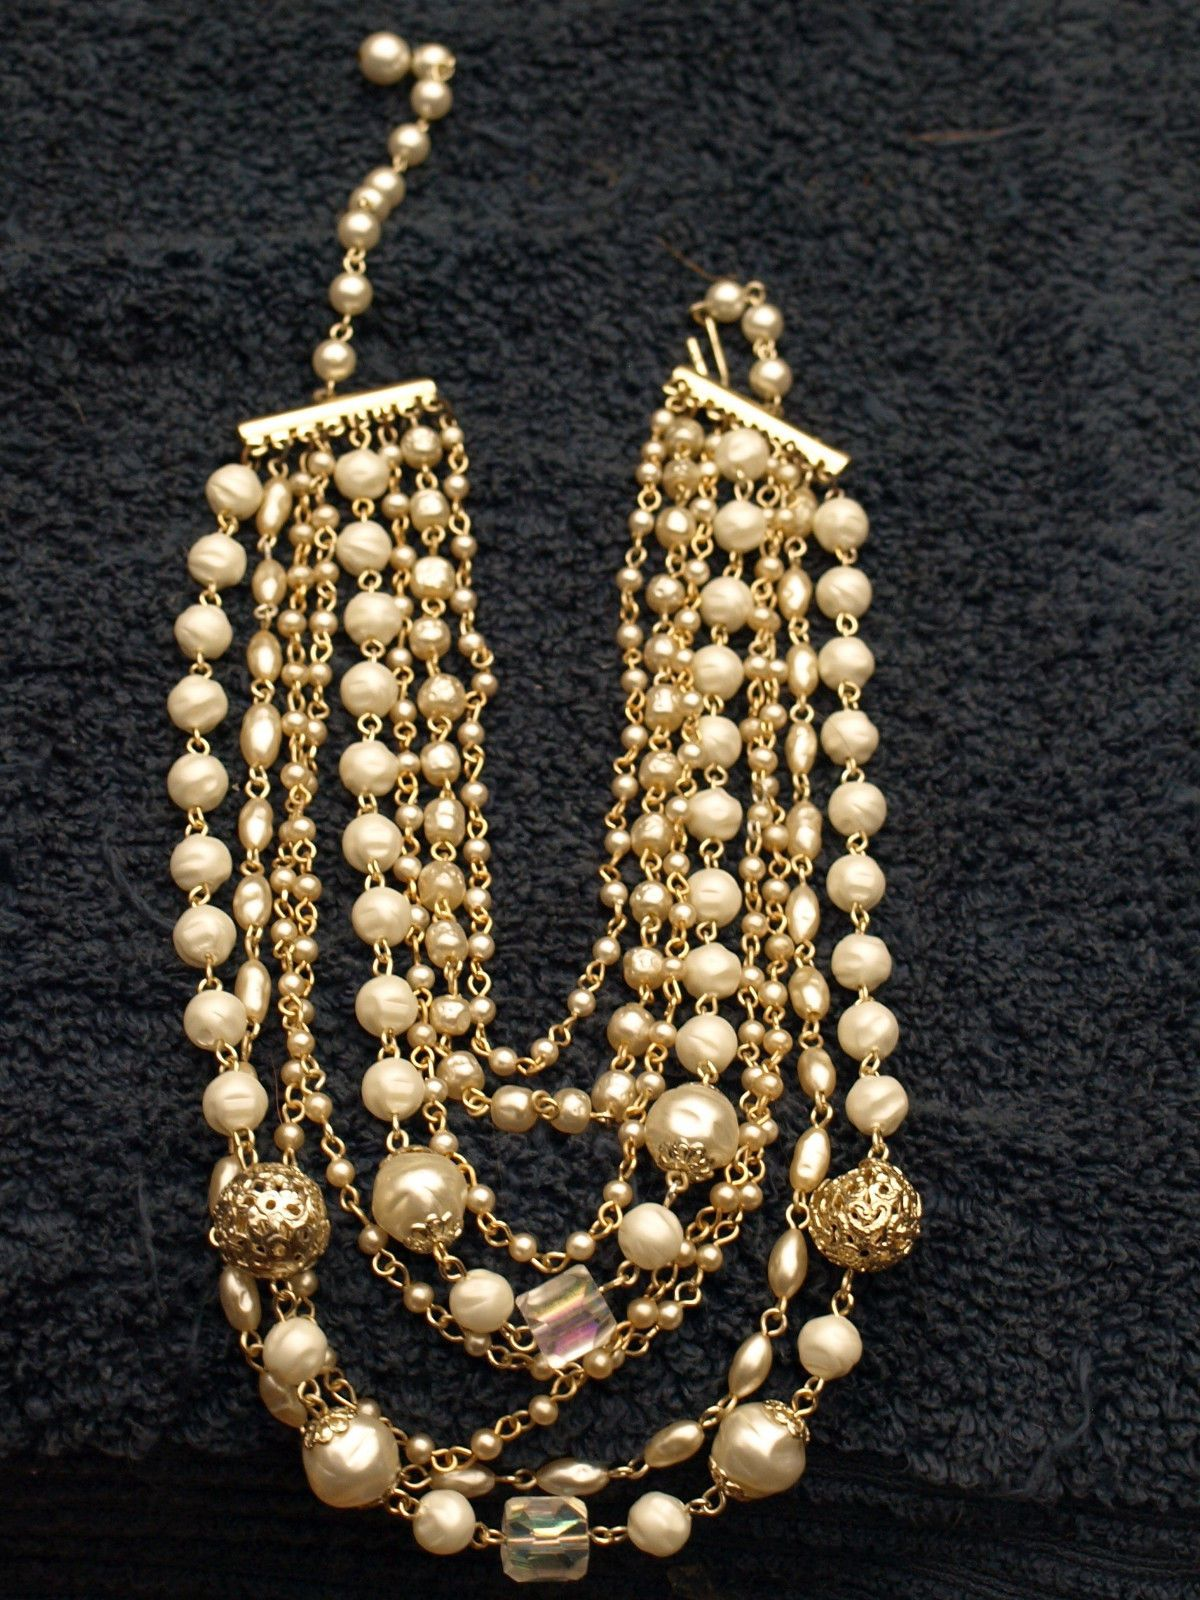 8740ad499578f Gorgeous 8-strand necklace with costume pearls, gold-tone beads ...